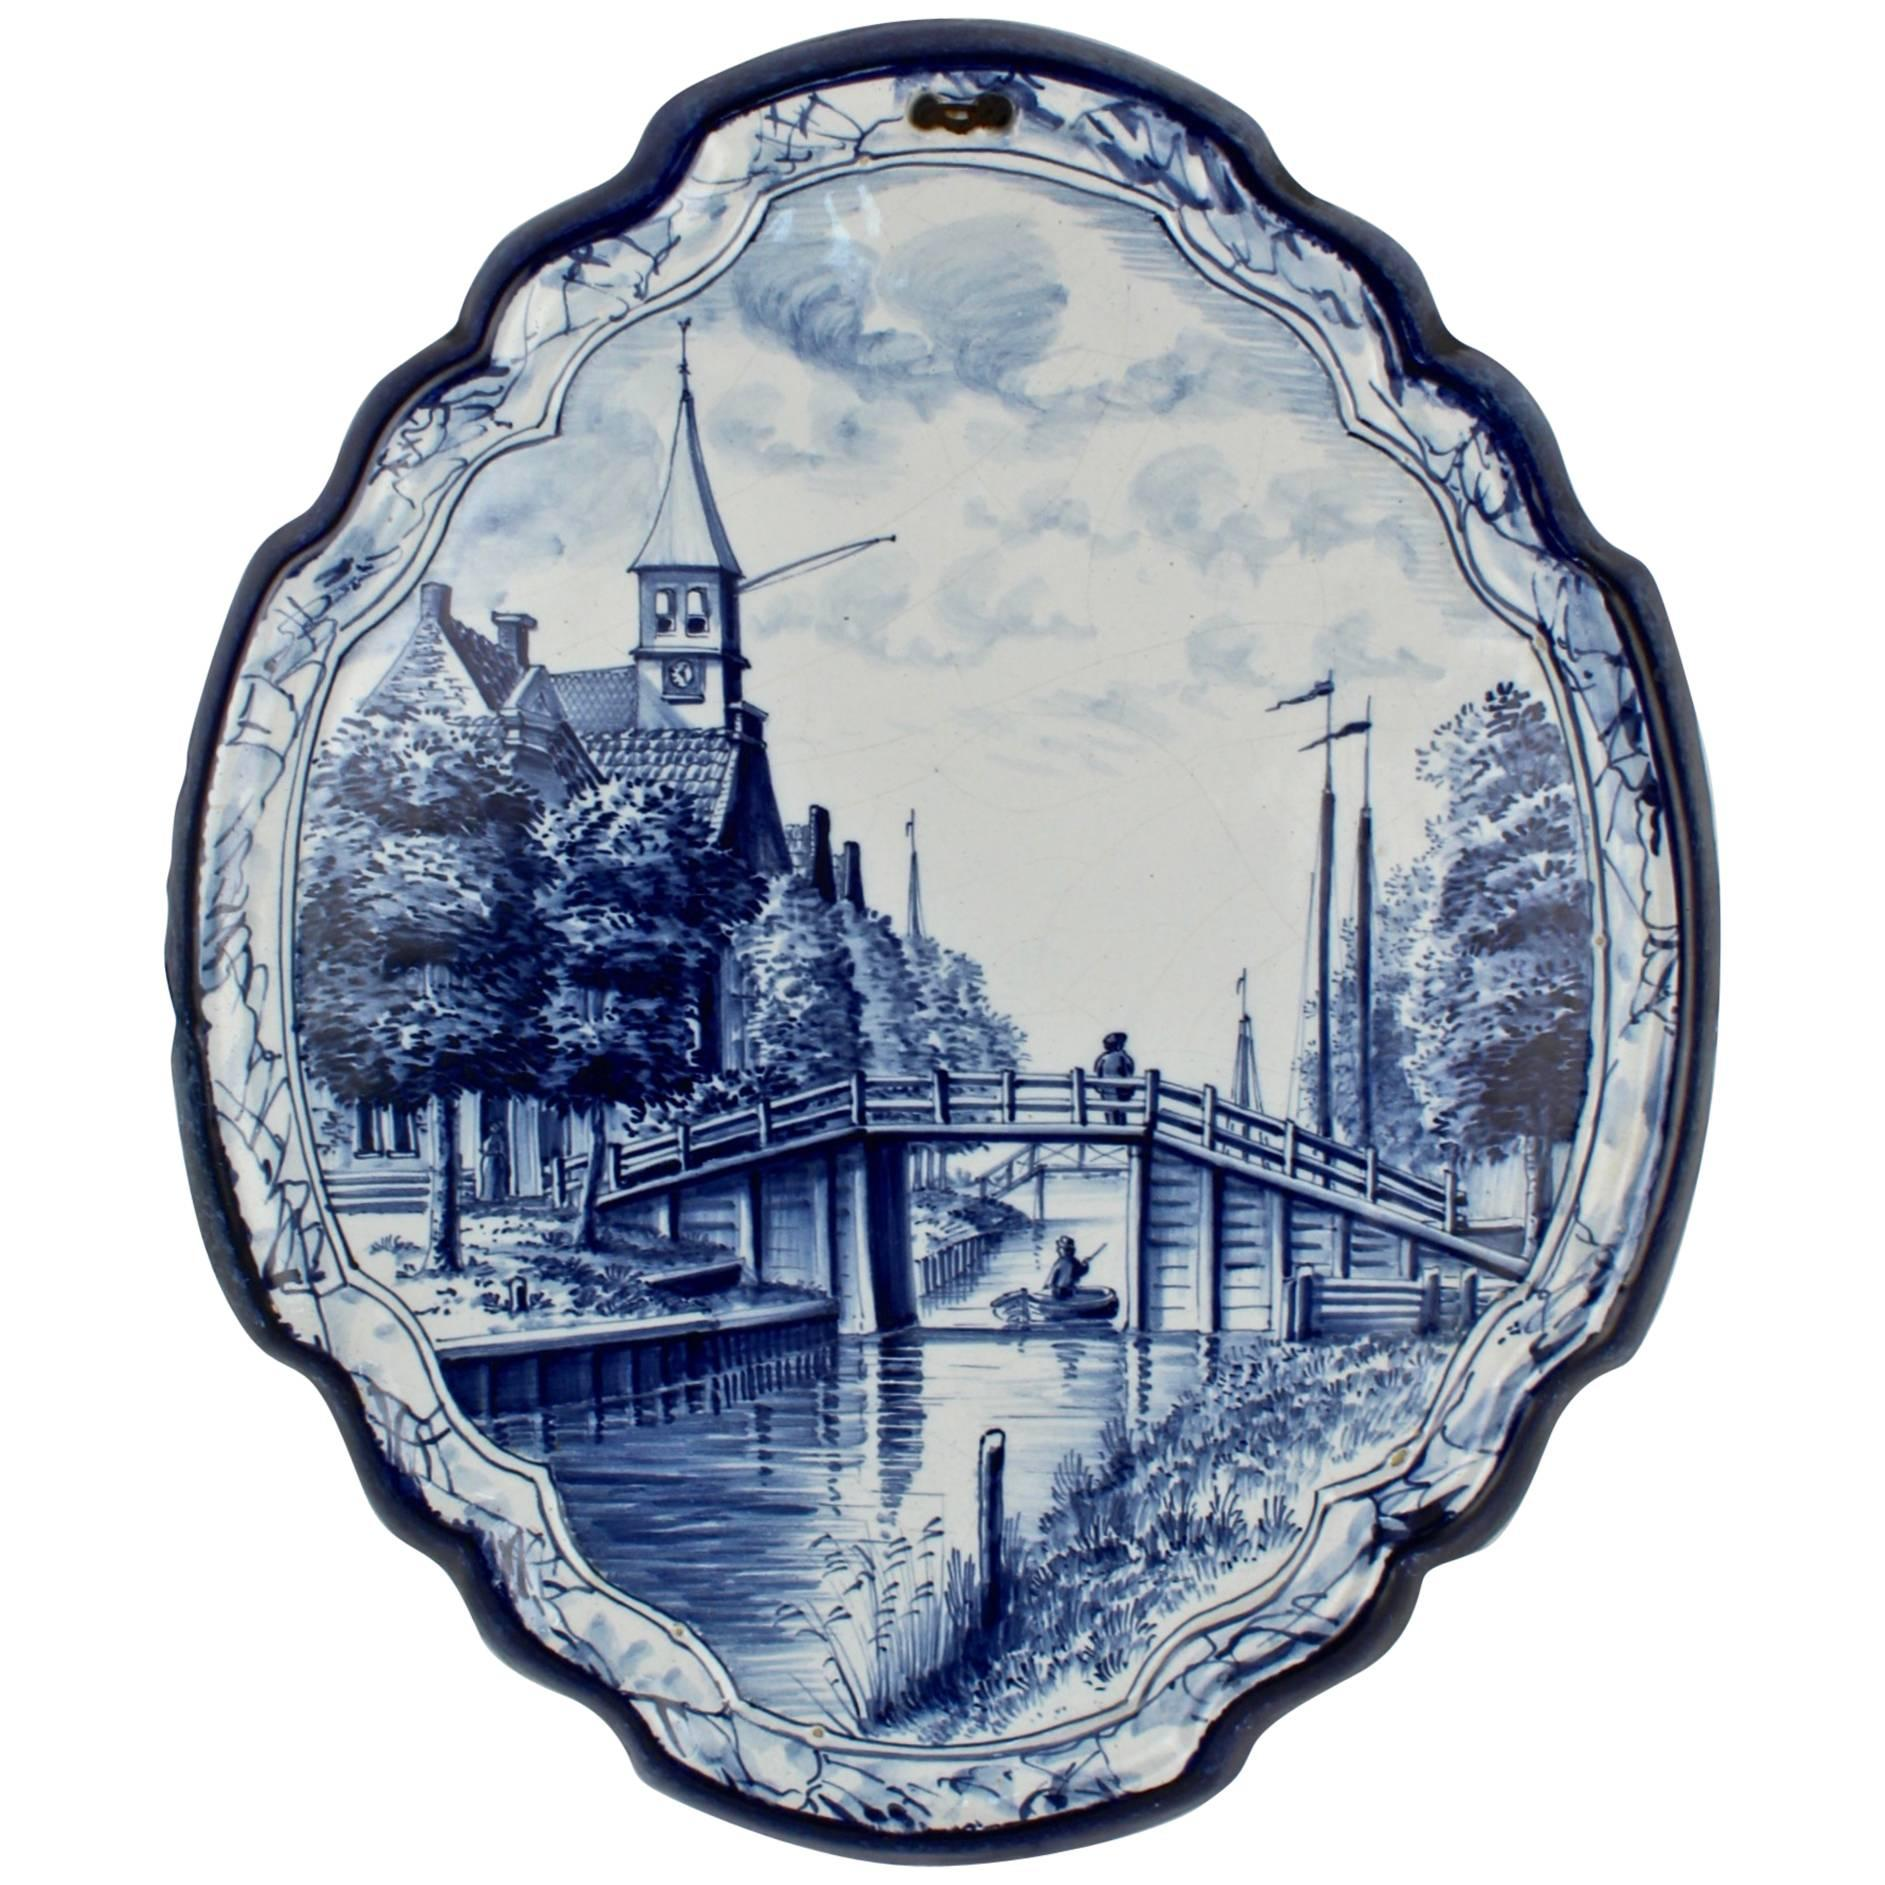 Antique Blue and White Dutch Delft Pottery Wall Plaque with Canal Scene